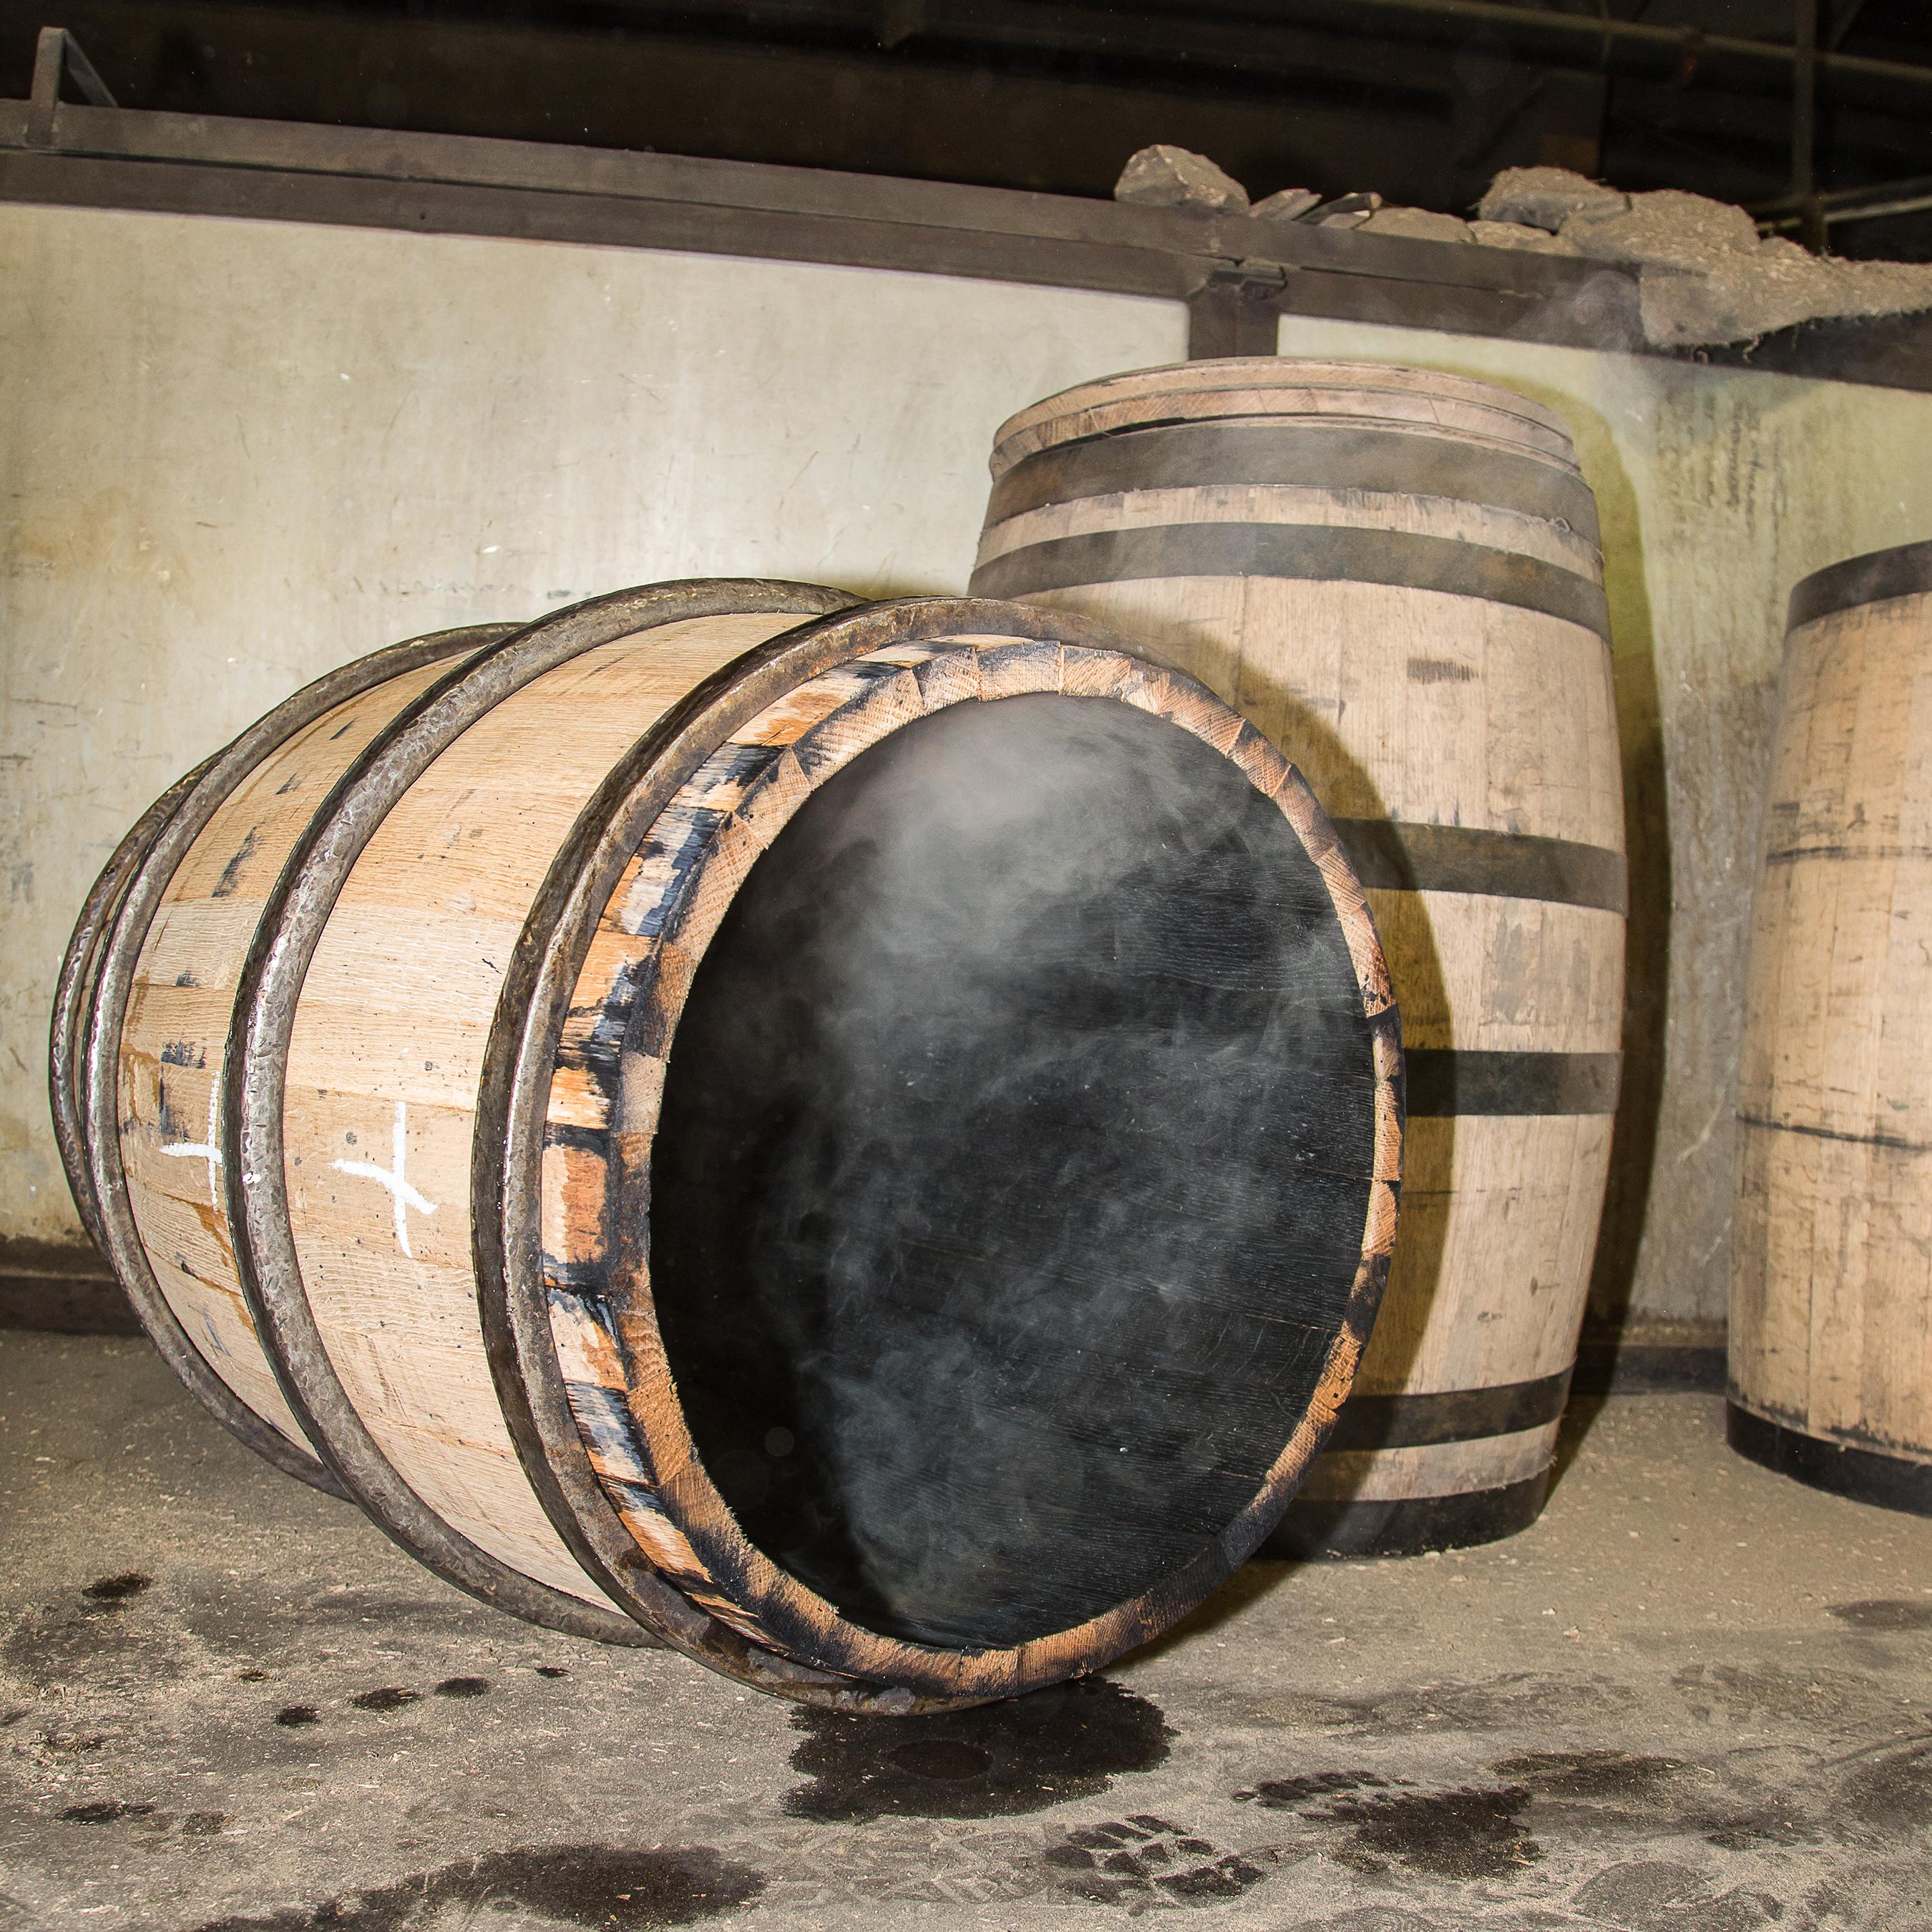 Used barrels from Kentucky bourbon distilleries